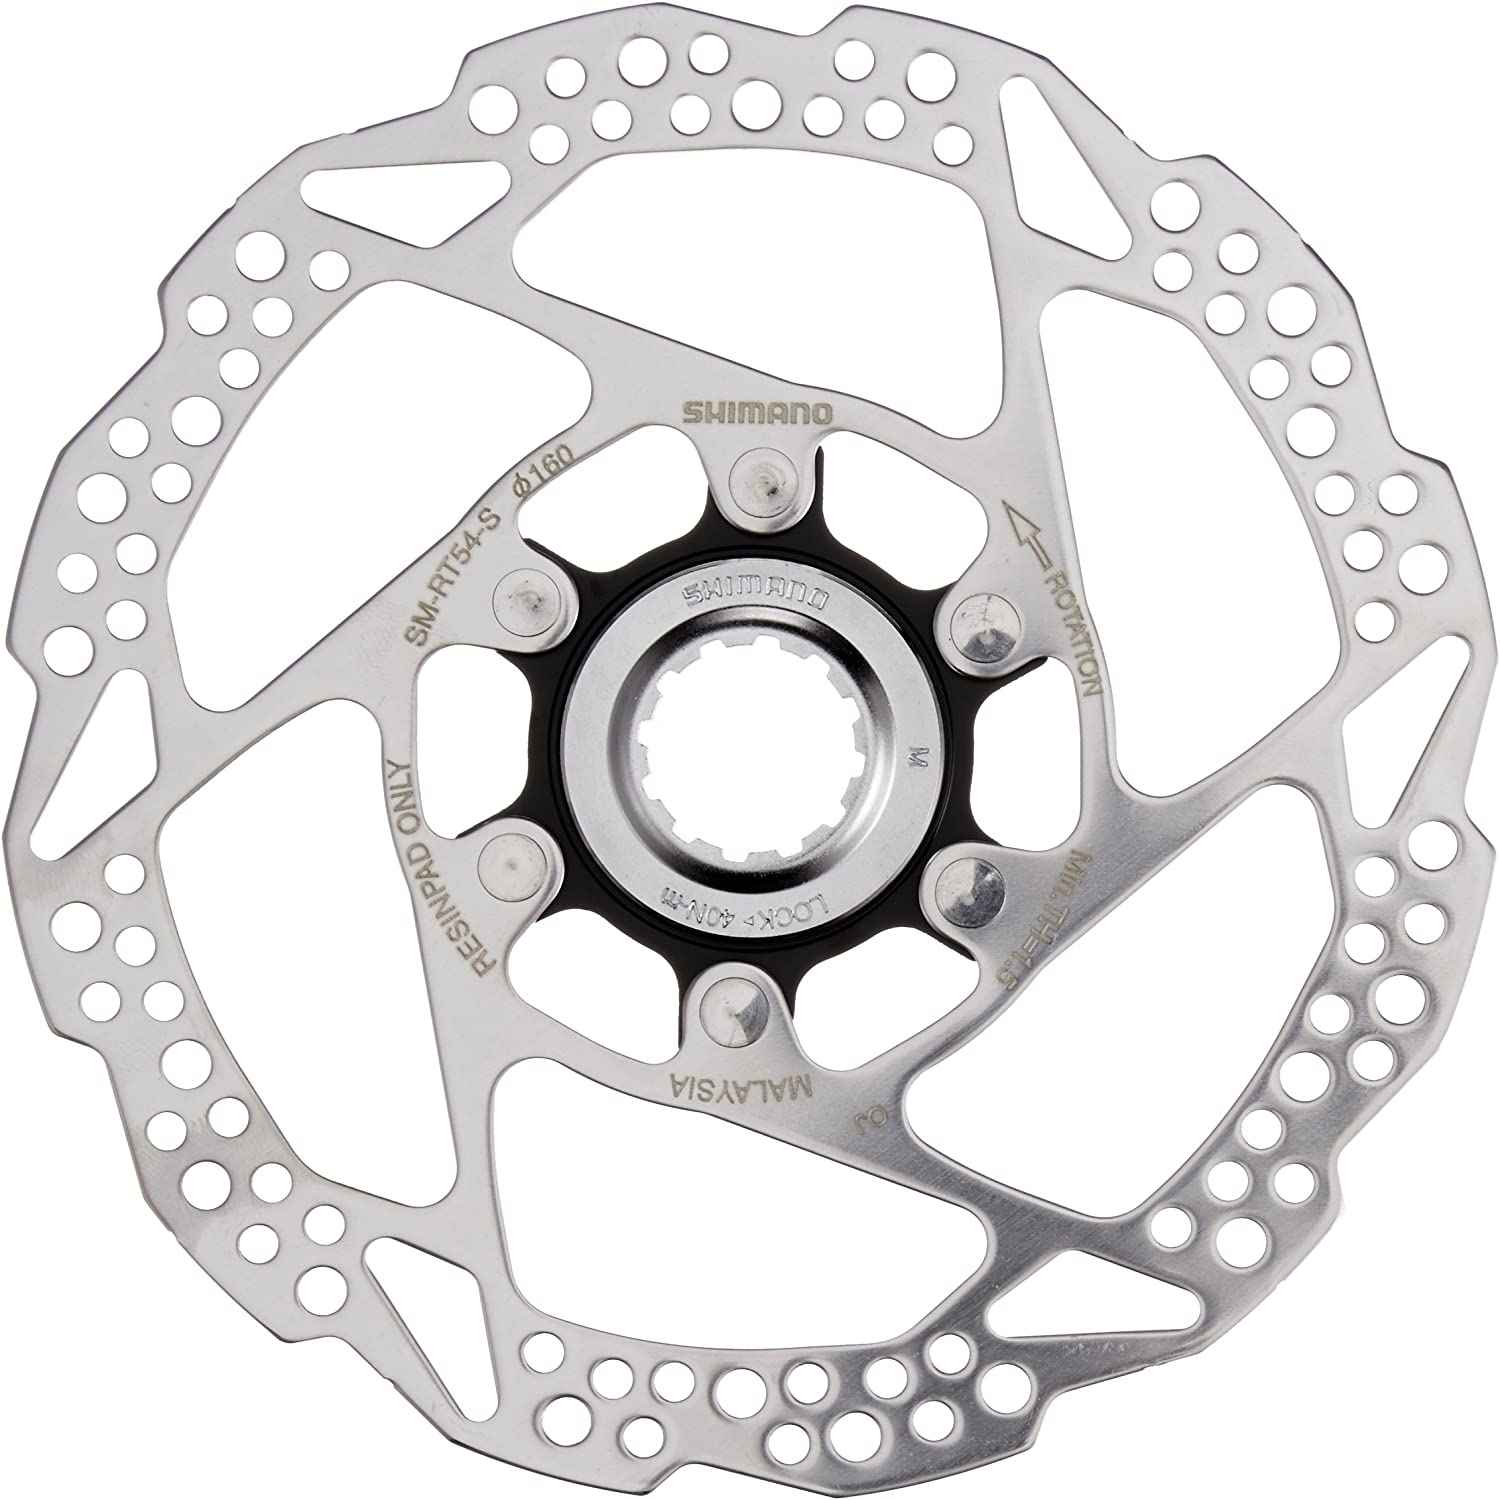 For bicycle Deore MTB Cycling SLX SM RT54 S Disc Brake Rotor Centerlock 160mm